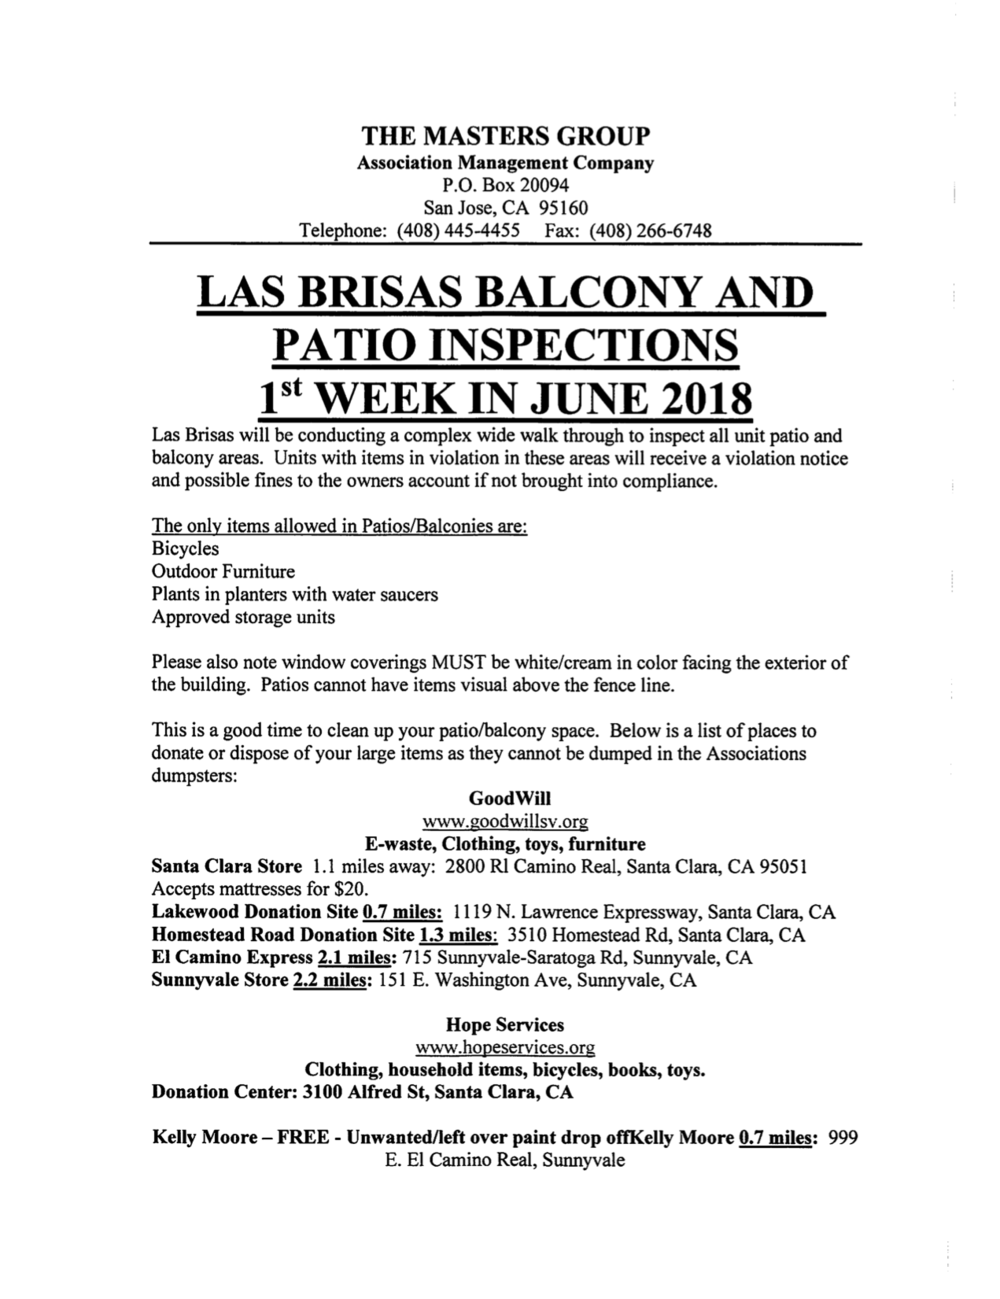 LAS BRISAS AC WALK THRU NOTICE.png